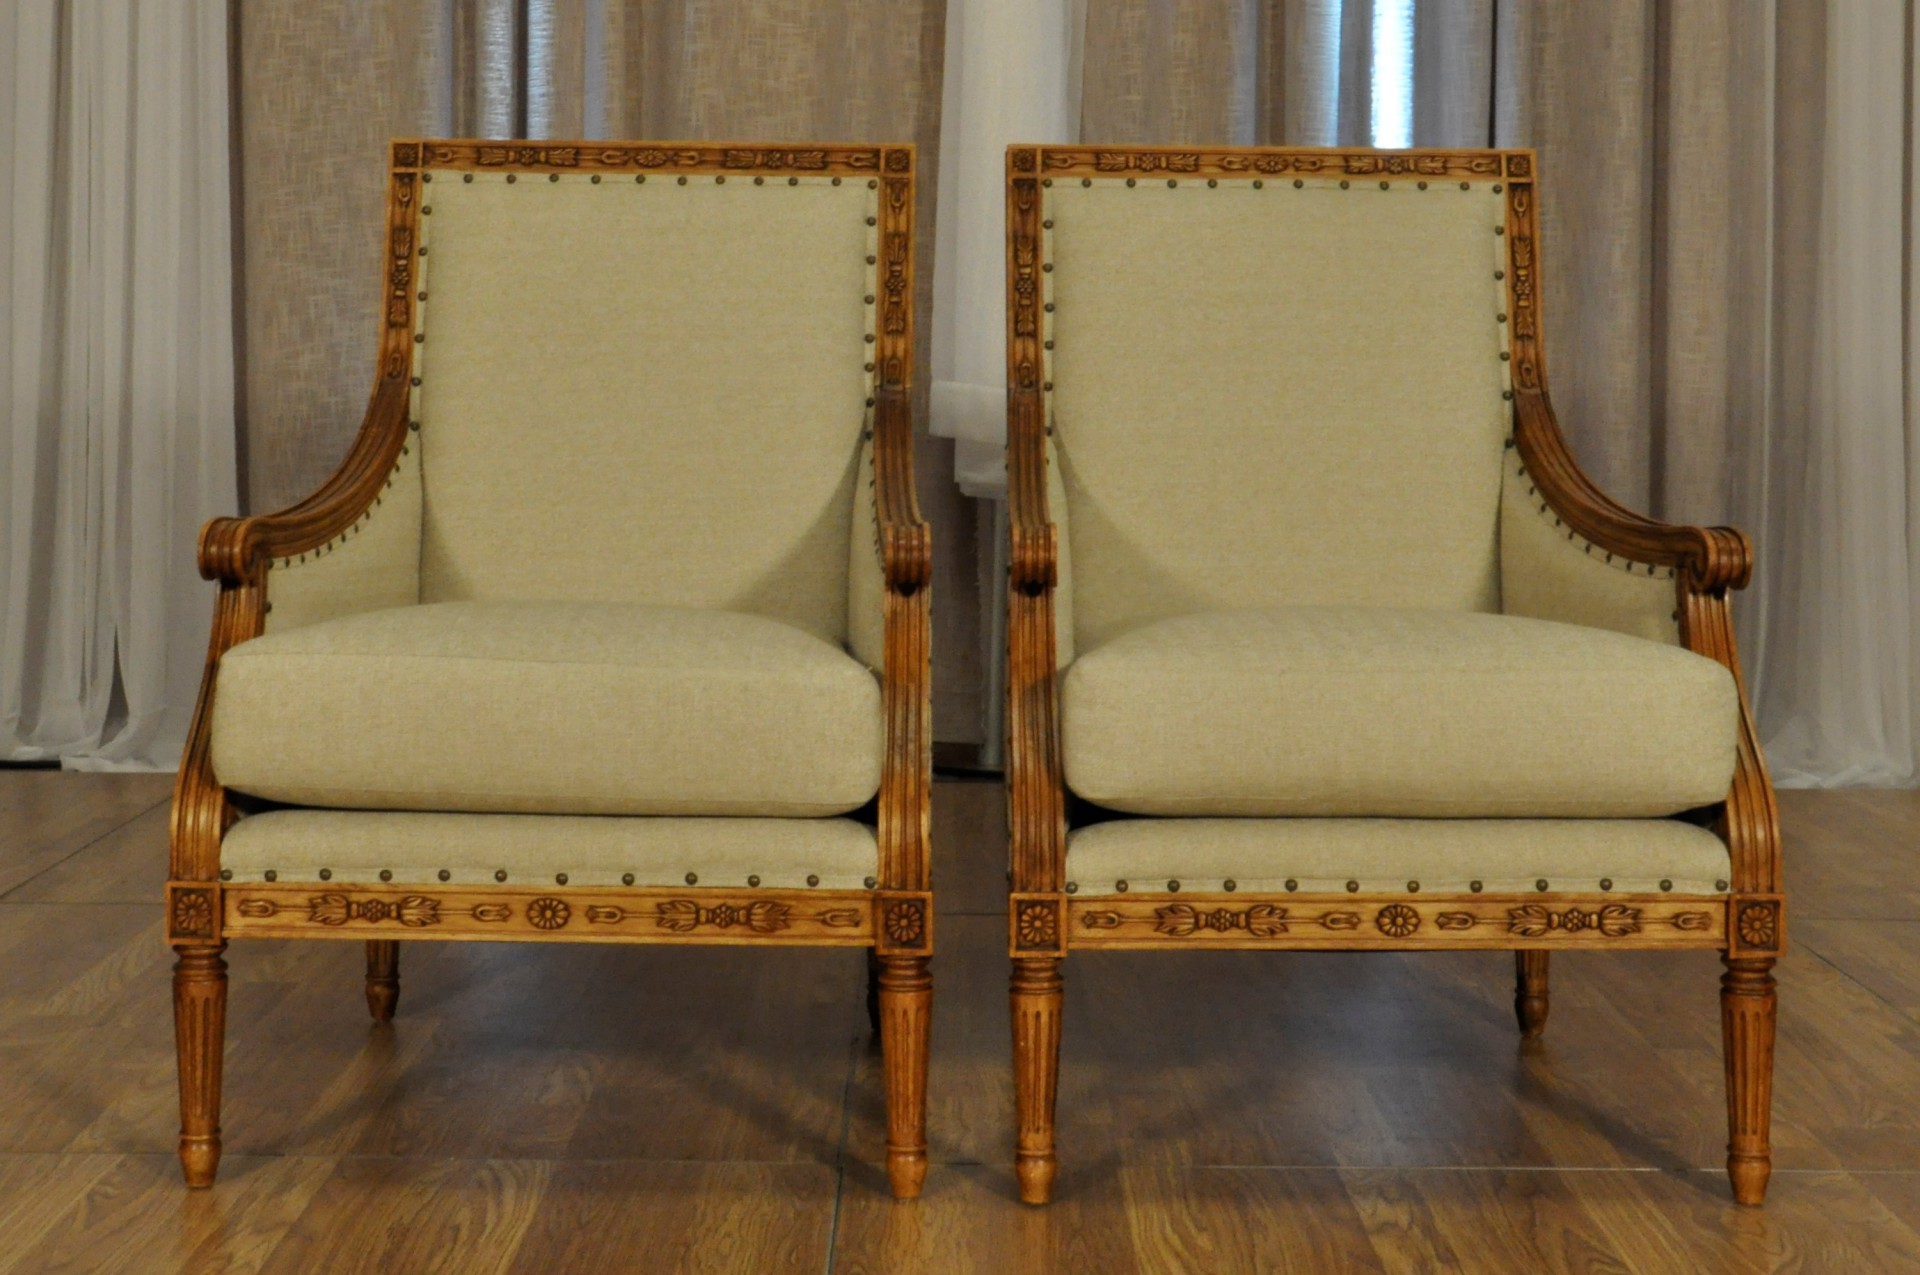 CHESTERFIELD WOODEN ARM CHAIRS